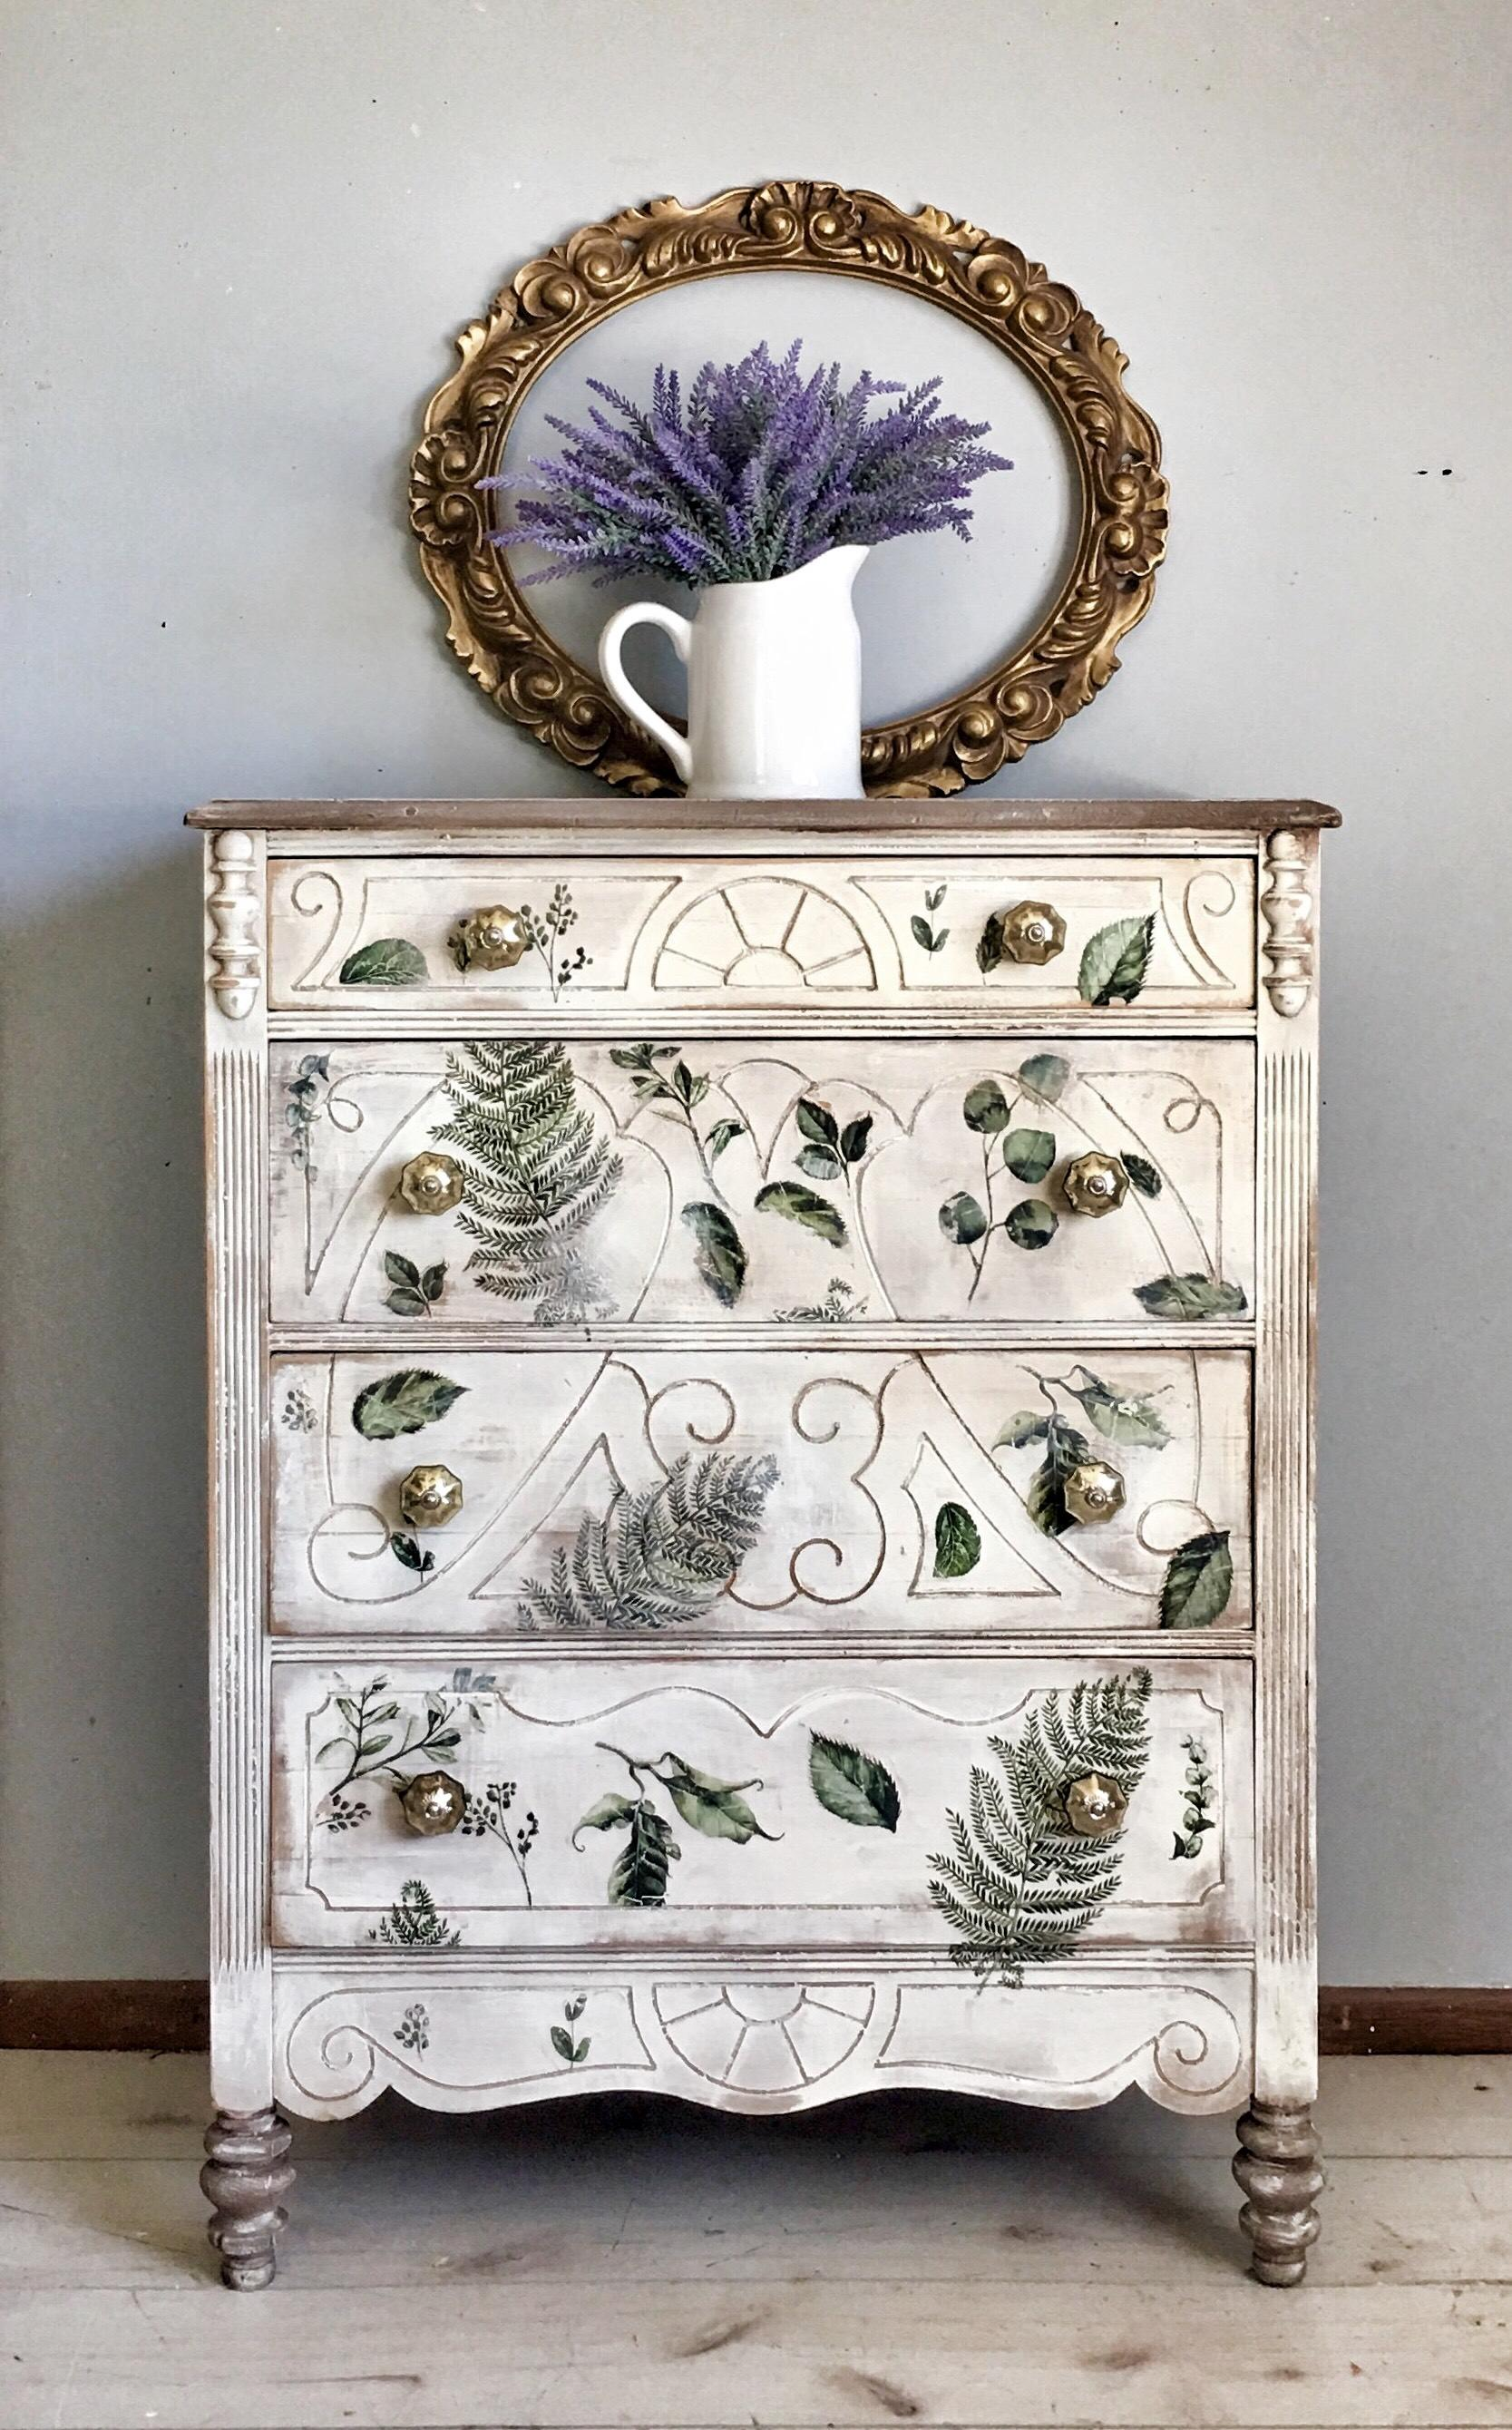 Here, Kim used our Fern Woods Decor Transfer™ on this antique dresser with a classic whitewash finish. Love the sanded edges and muted tones that give this piece a beautiful rustic look.